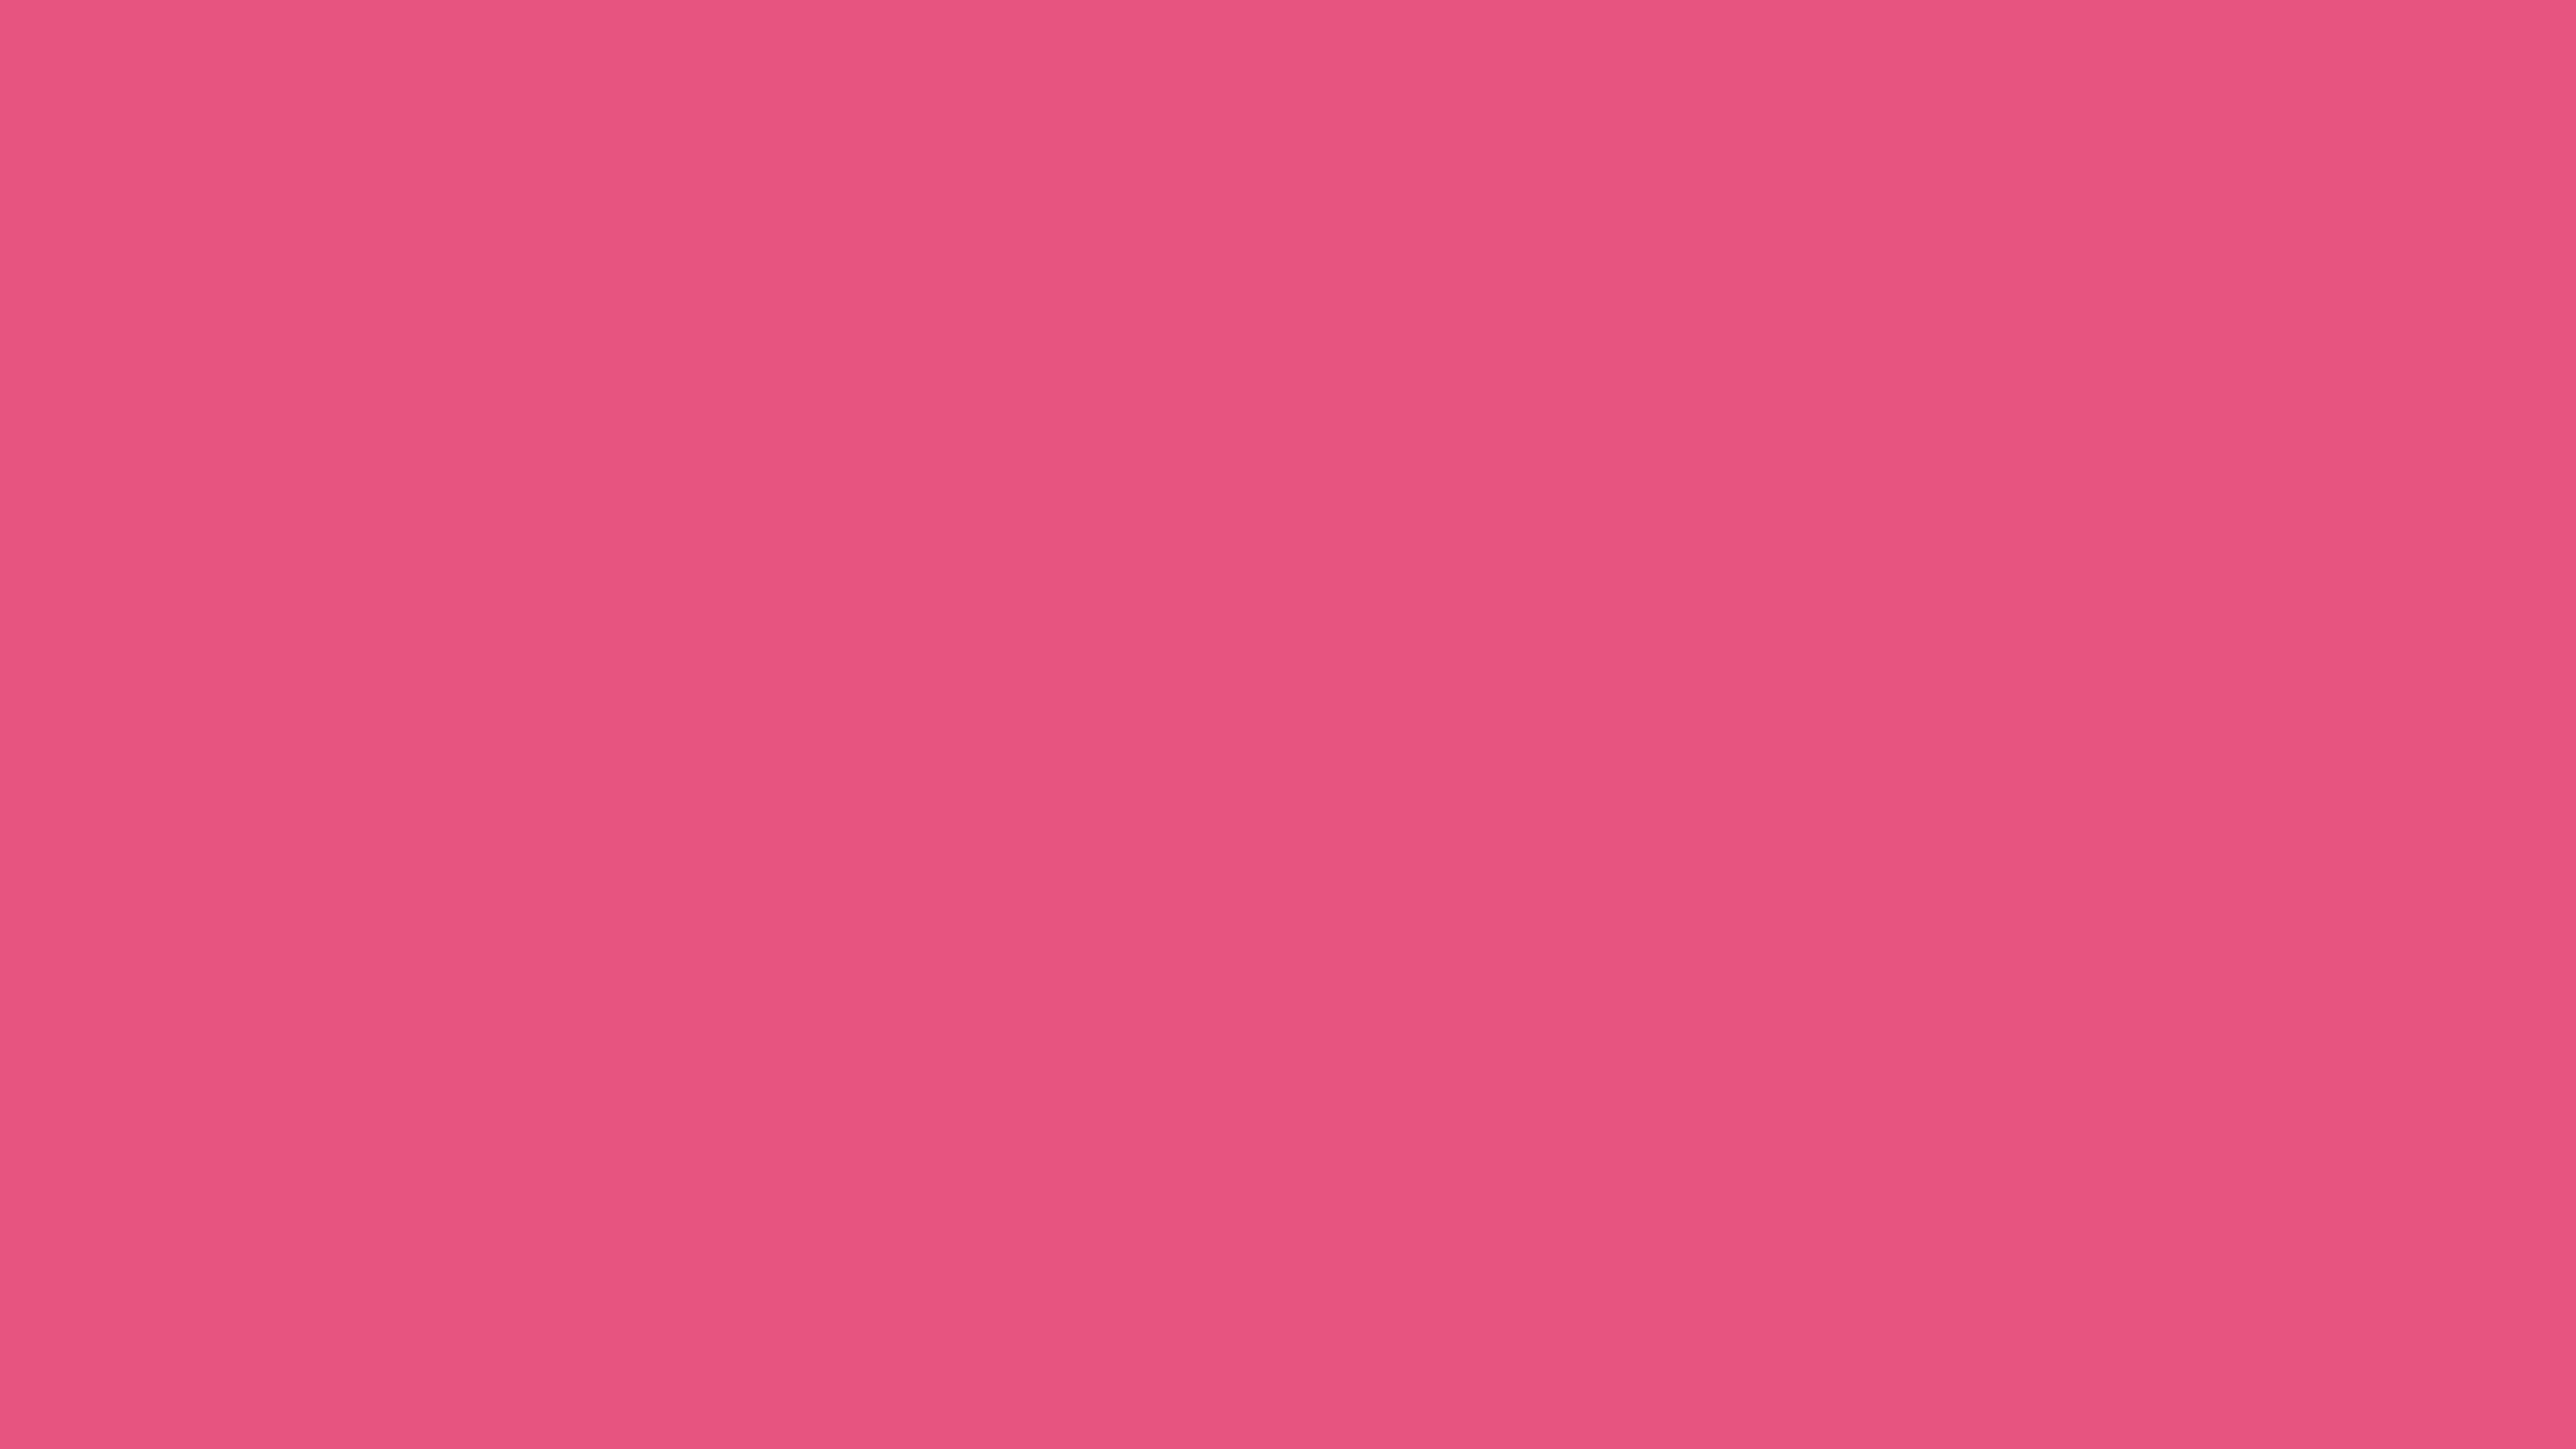 3840x2160 Dark Pink Solid Color Background